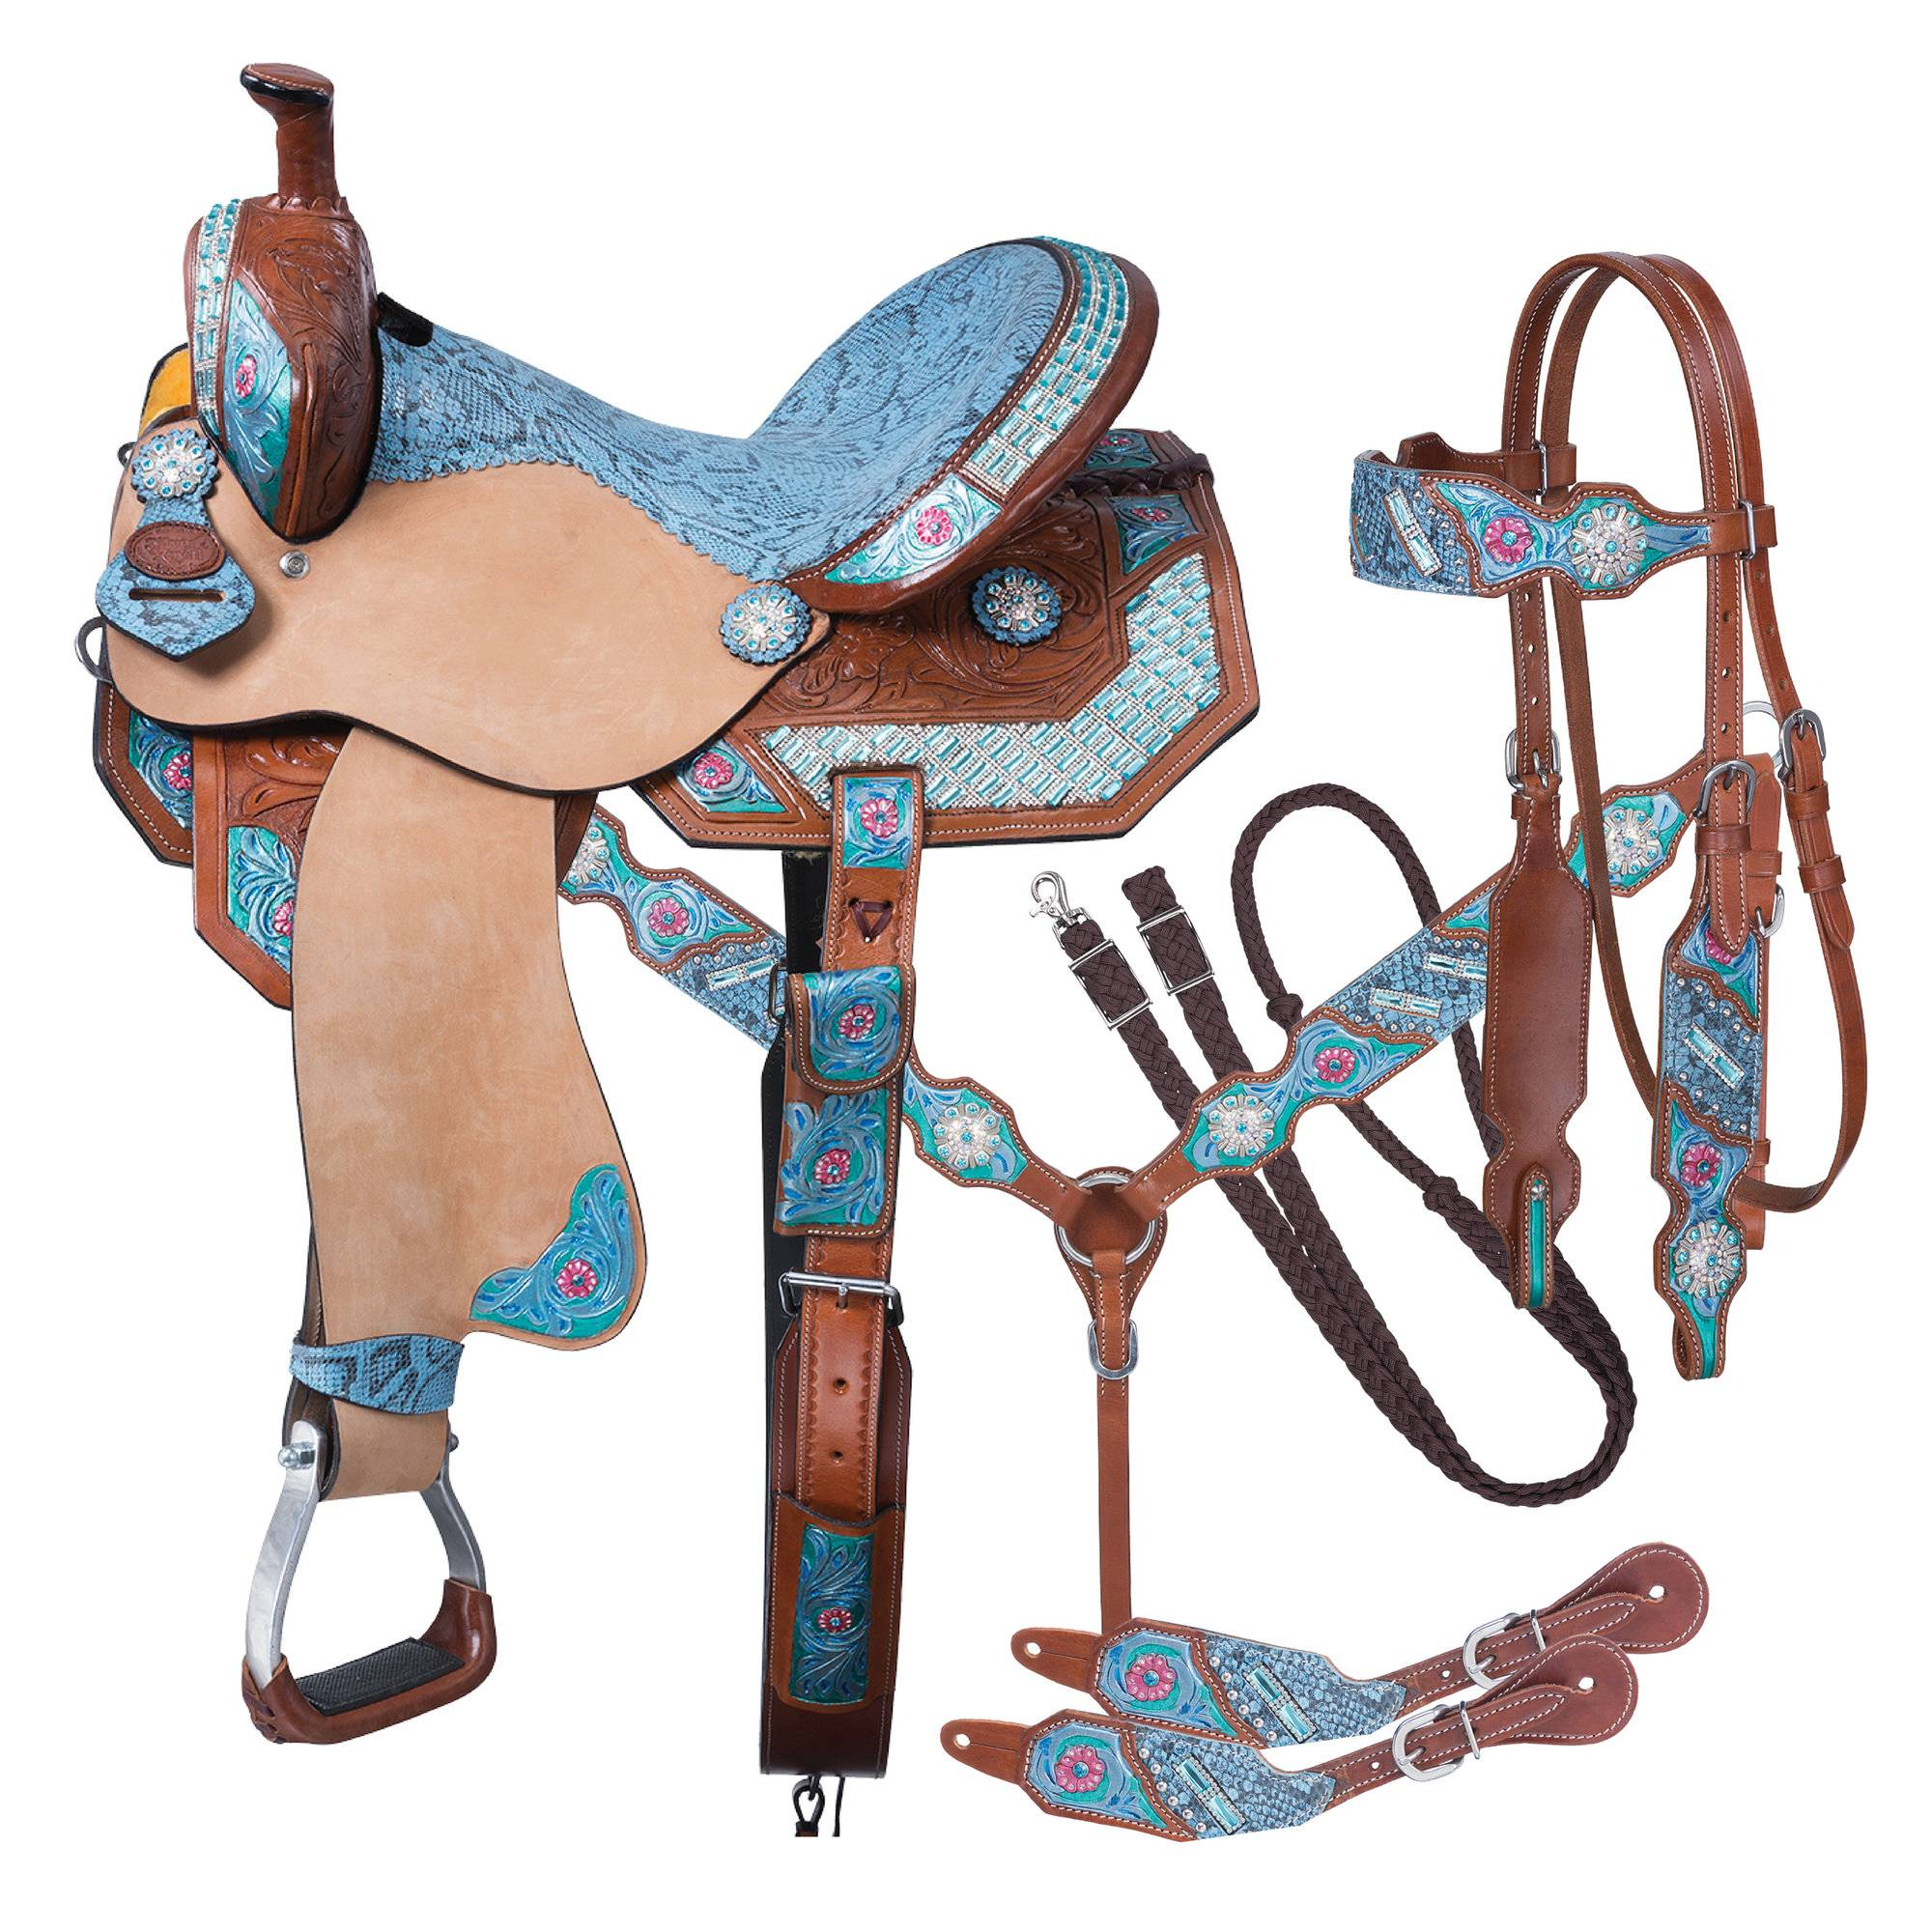 Silver Royal Macaelah Barrel Saddle 5Pc Package